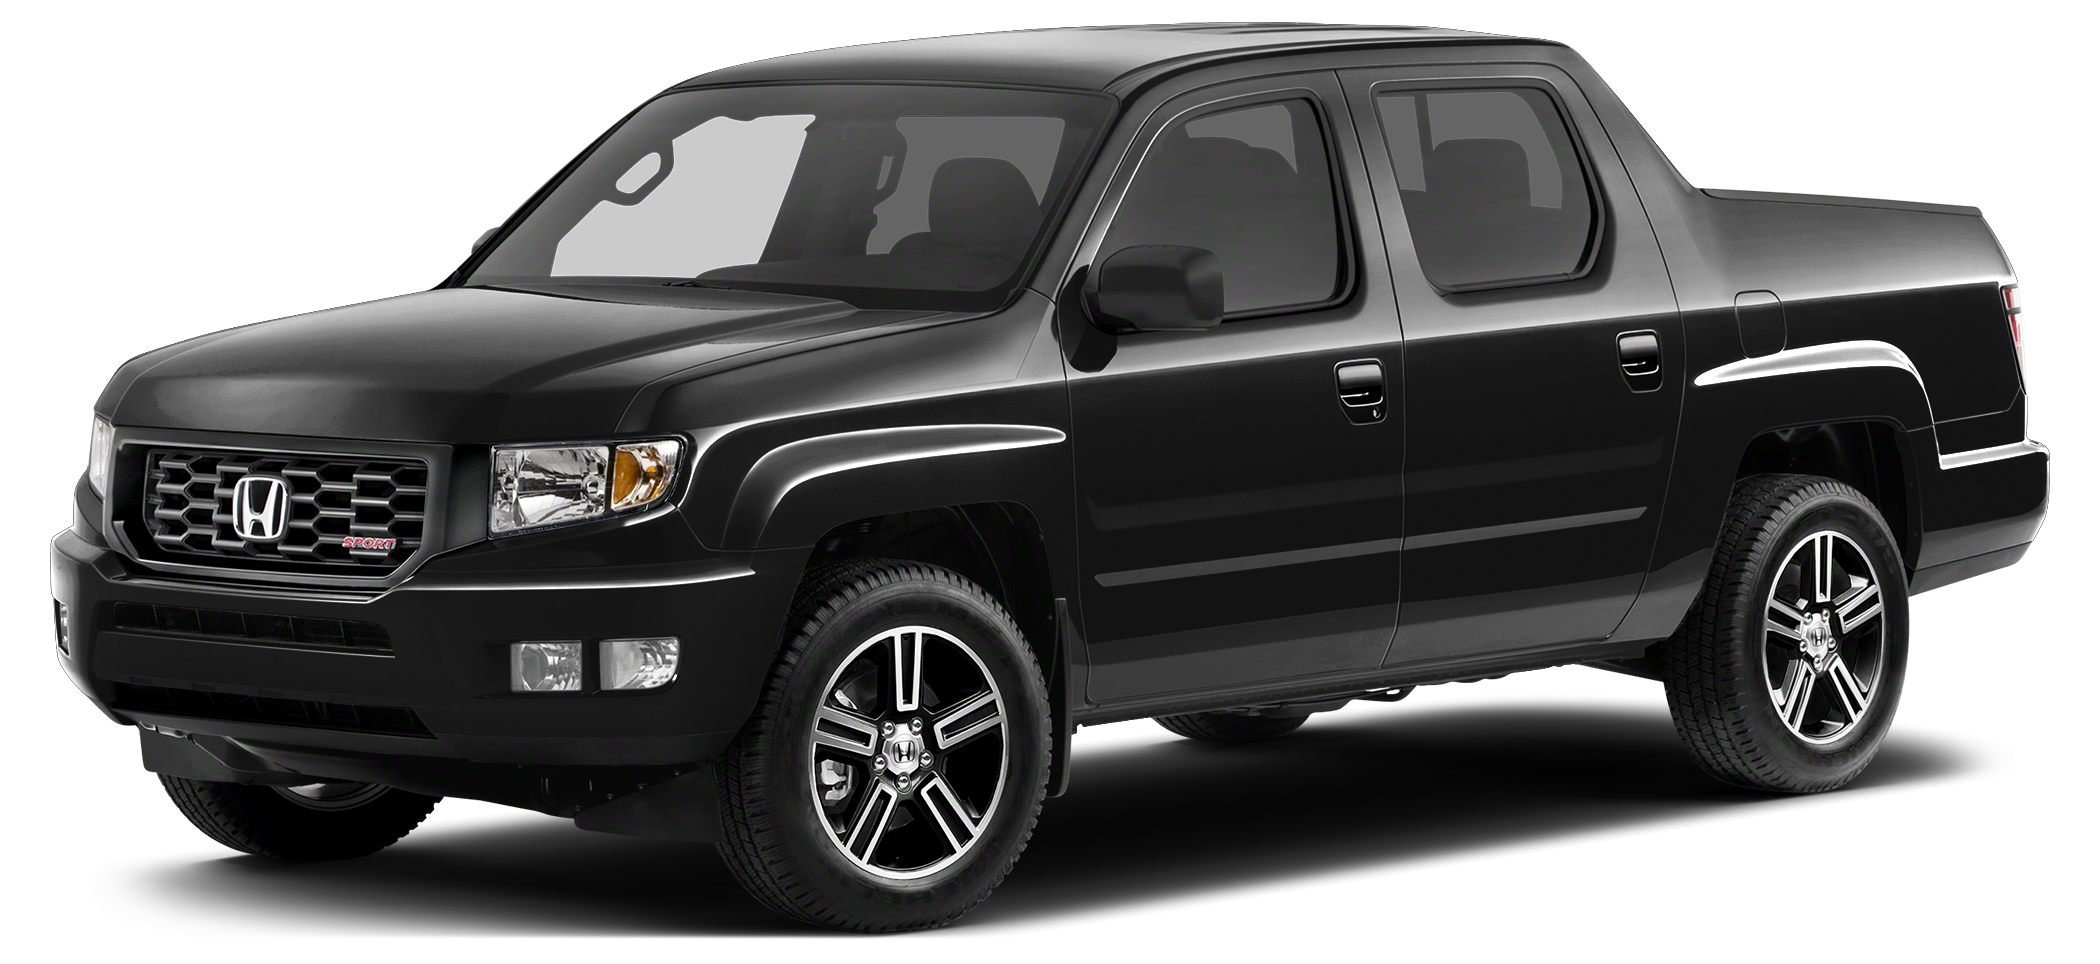 2014 Honda Ridgeline Sport Introducing the 2014 Honda Ridgeline Very clean and very well priced